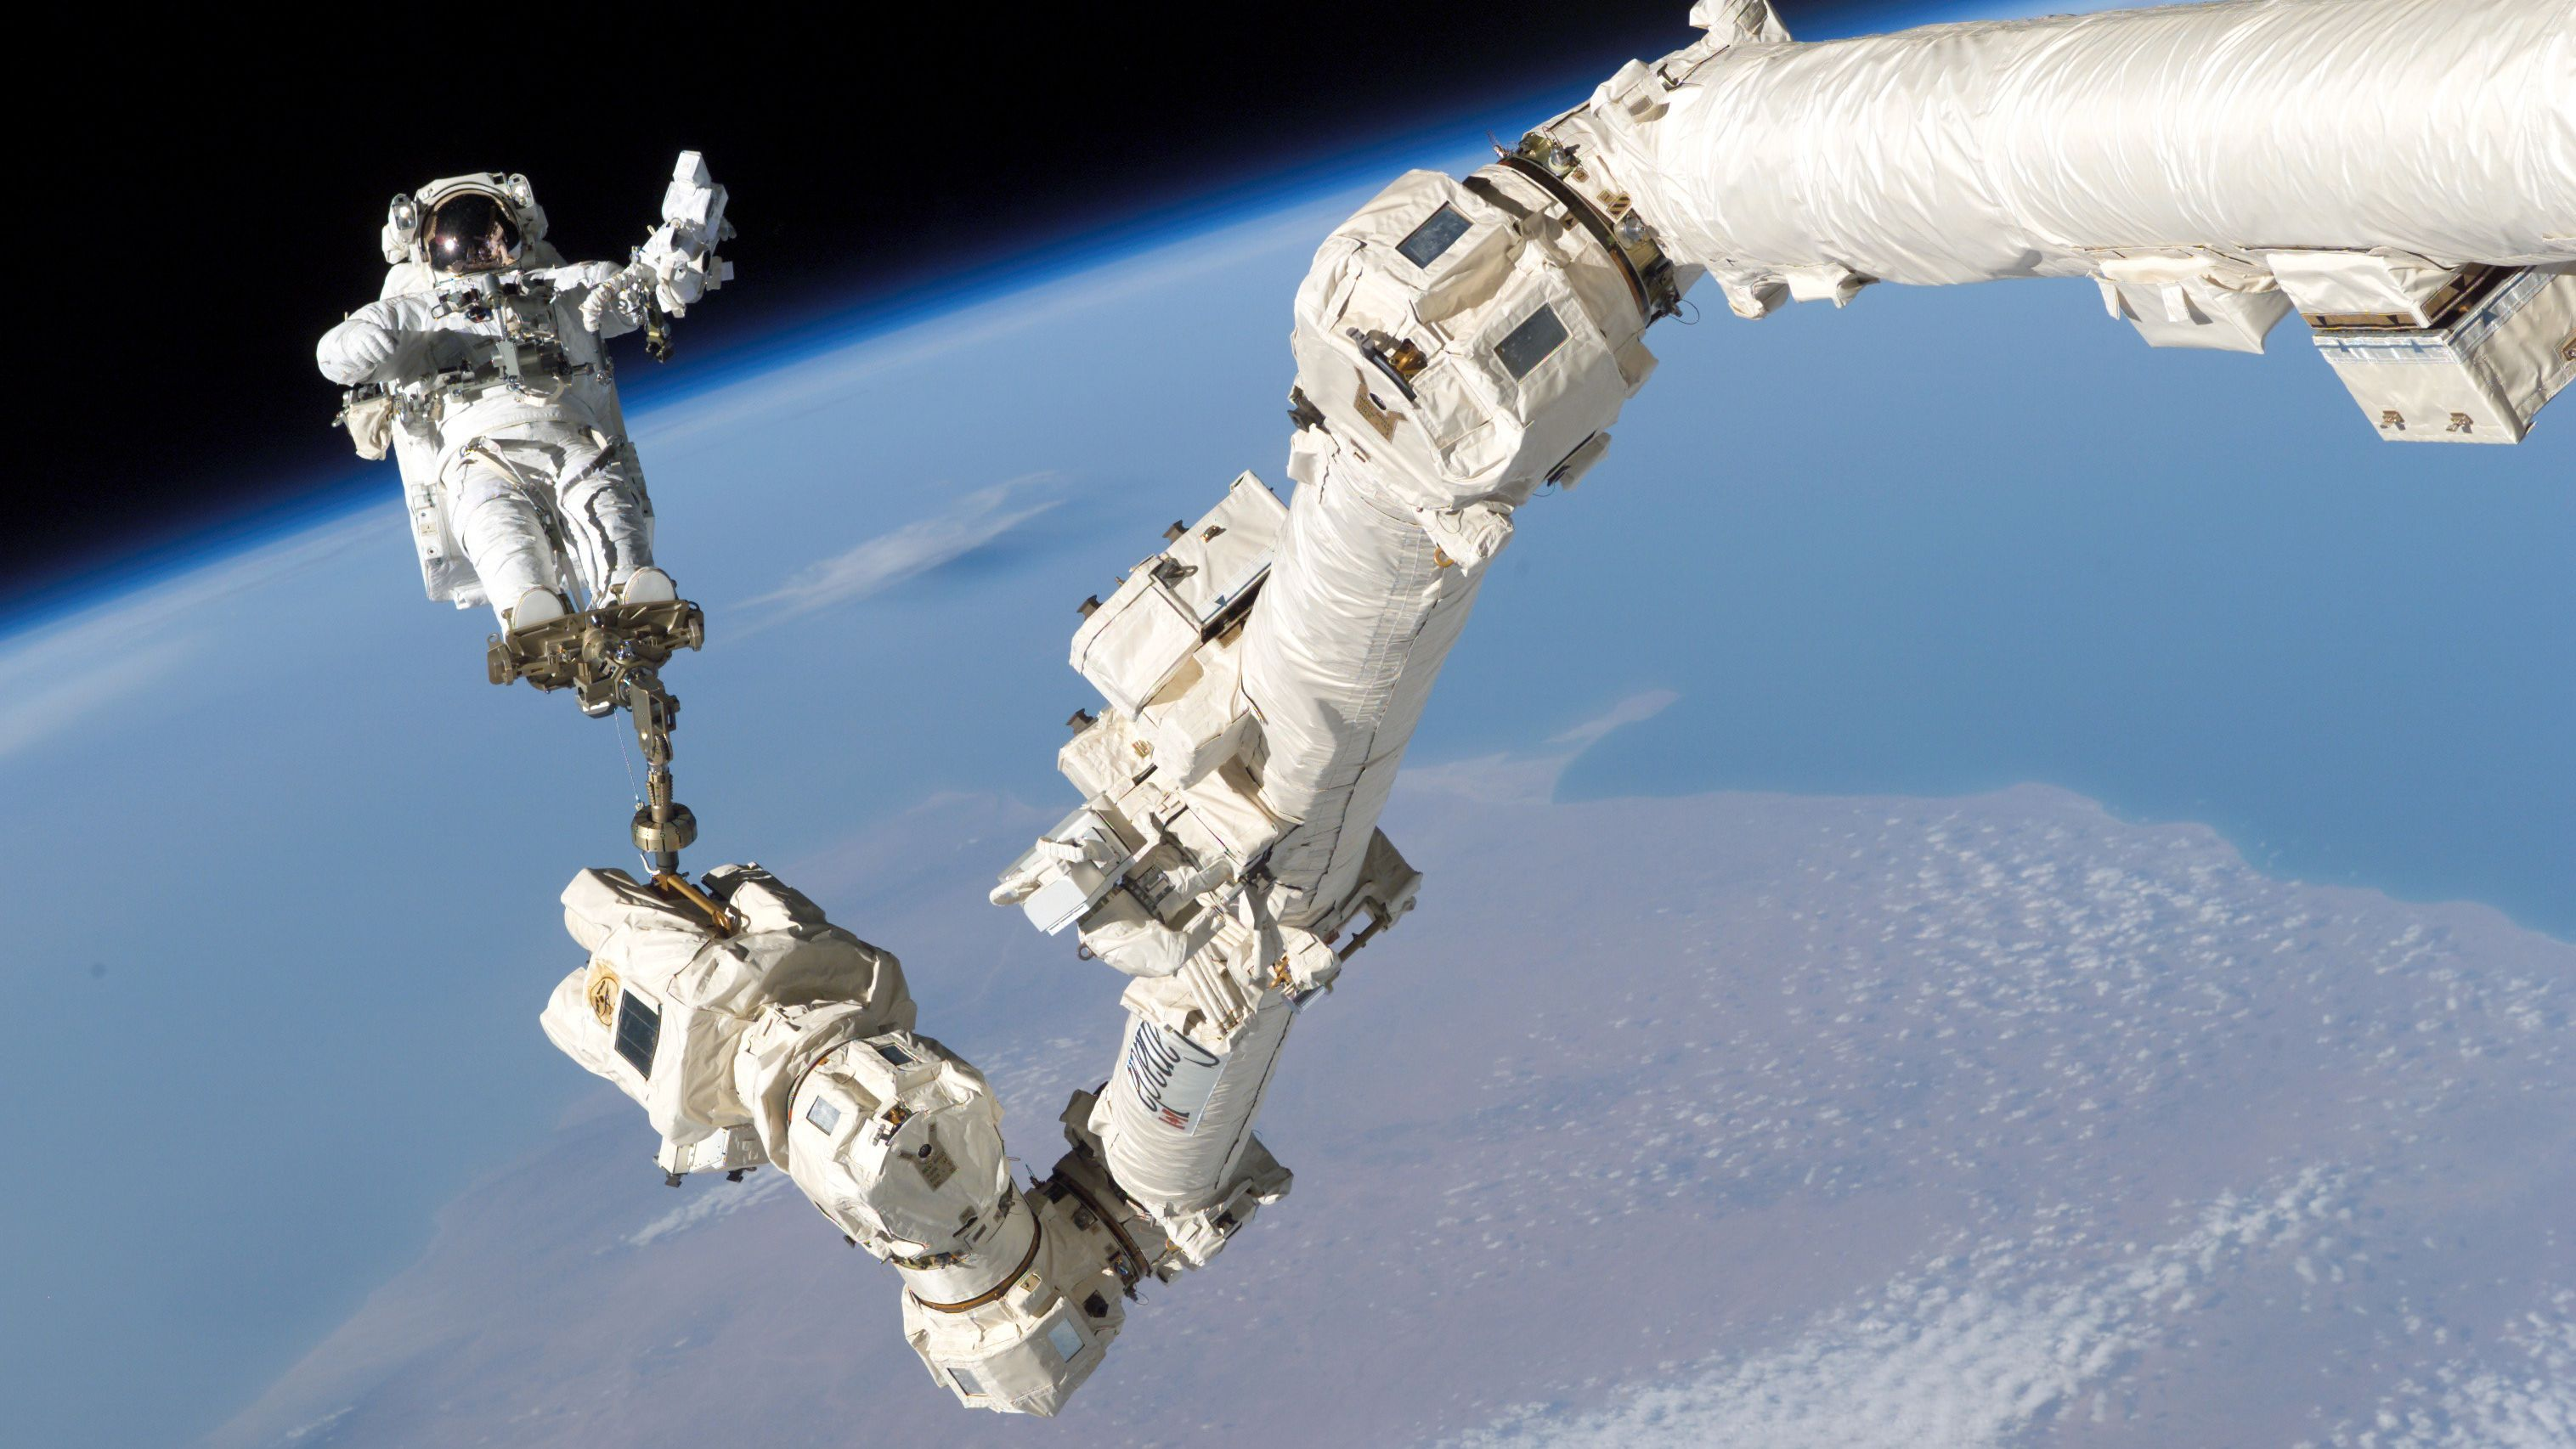 Astronaut Stephen K. Robinson, STS-114 mission specialist, anchored to a foot restraint on the International Space Station's Canadarm2, participates in the mission's third session of extravehicular activity (EVA) August 3, 2005. The blackness of space and Earth's horizon form the backdrop for the image. Picture taken August 3, 2005.